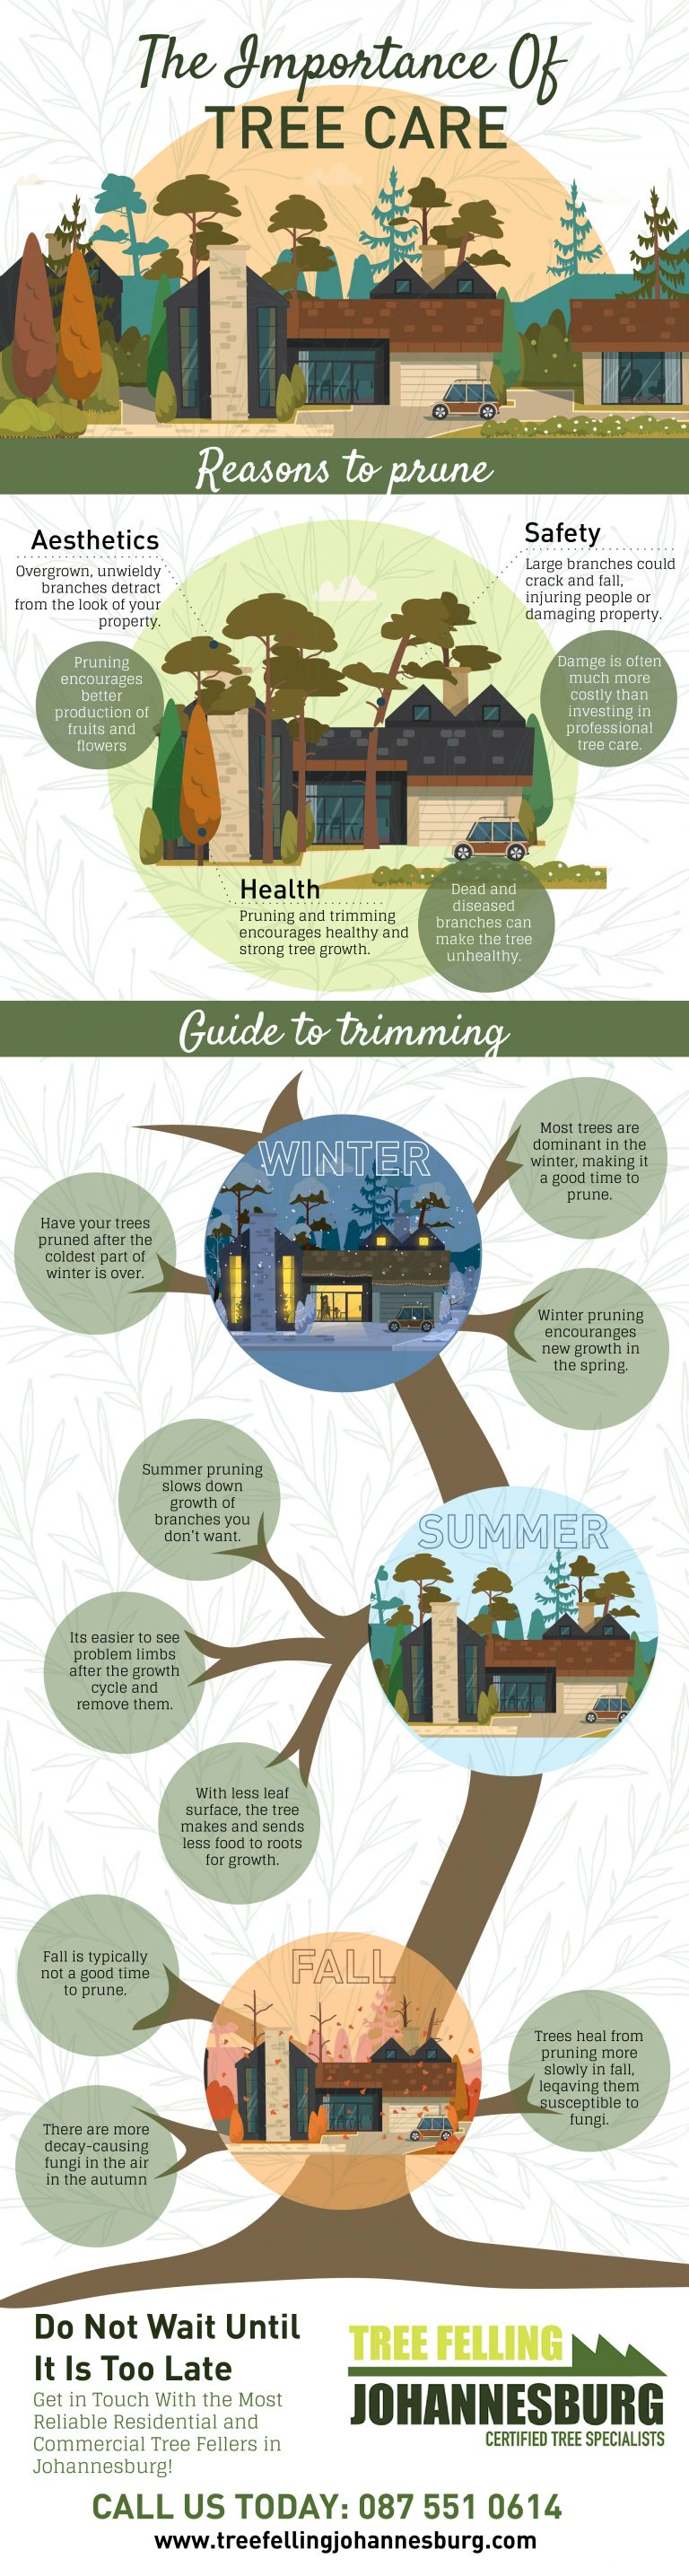 Benefits of Caring for Trees